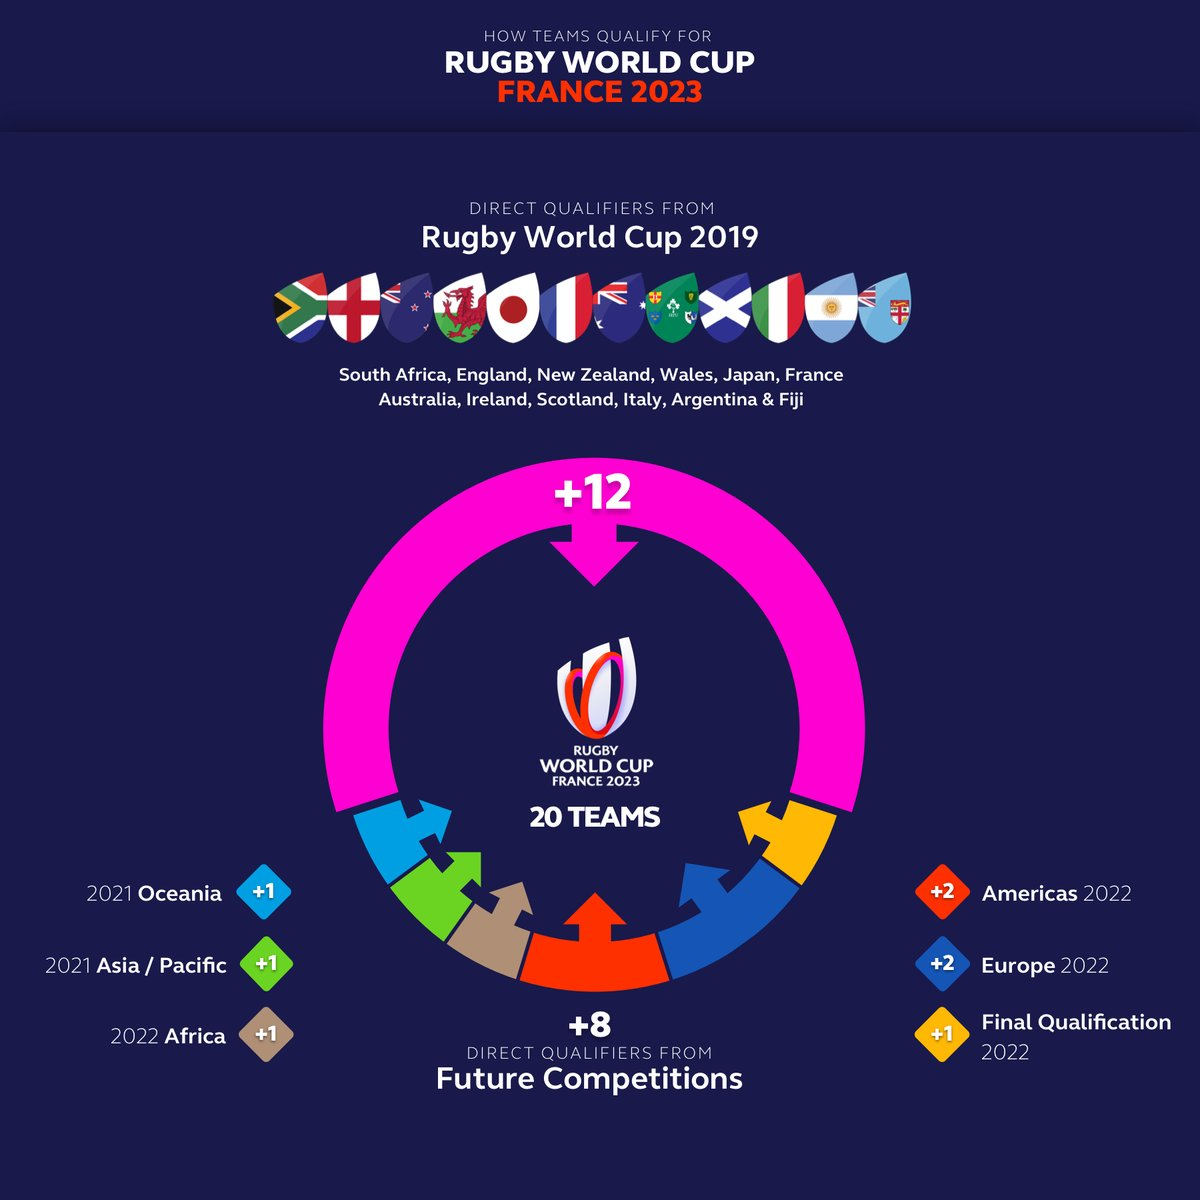 Rugby World Cup (@rugbyworldcup) on Twitter photo 08/06/2020 09:36:40